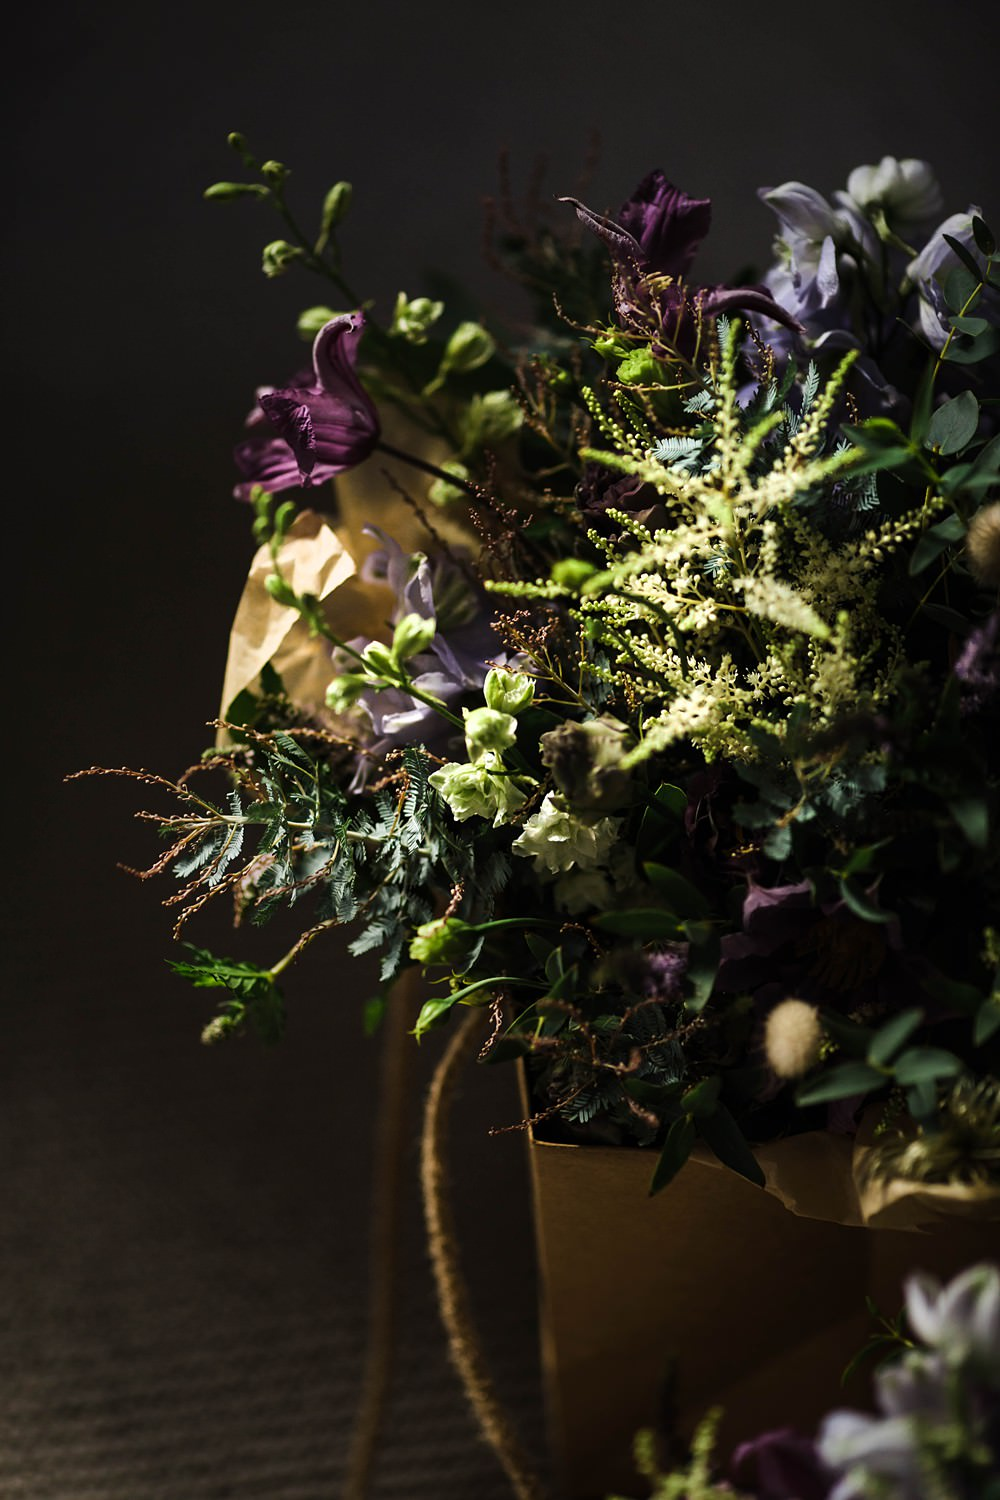 Bride Bridal Bouquet Flowers Wid Herbs Foliage Cherwell Boathouse Wedding Claudia Rose Carter Photography